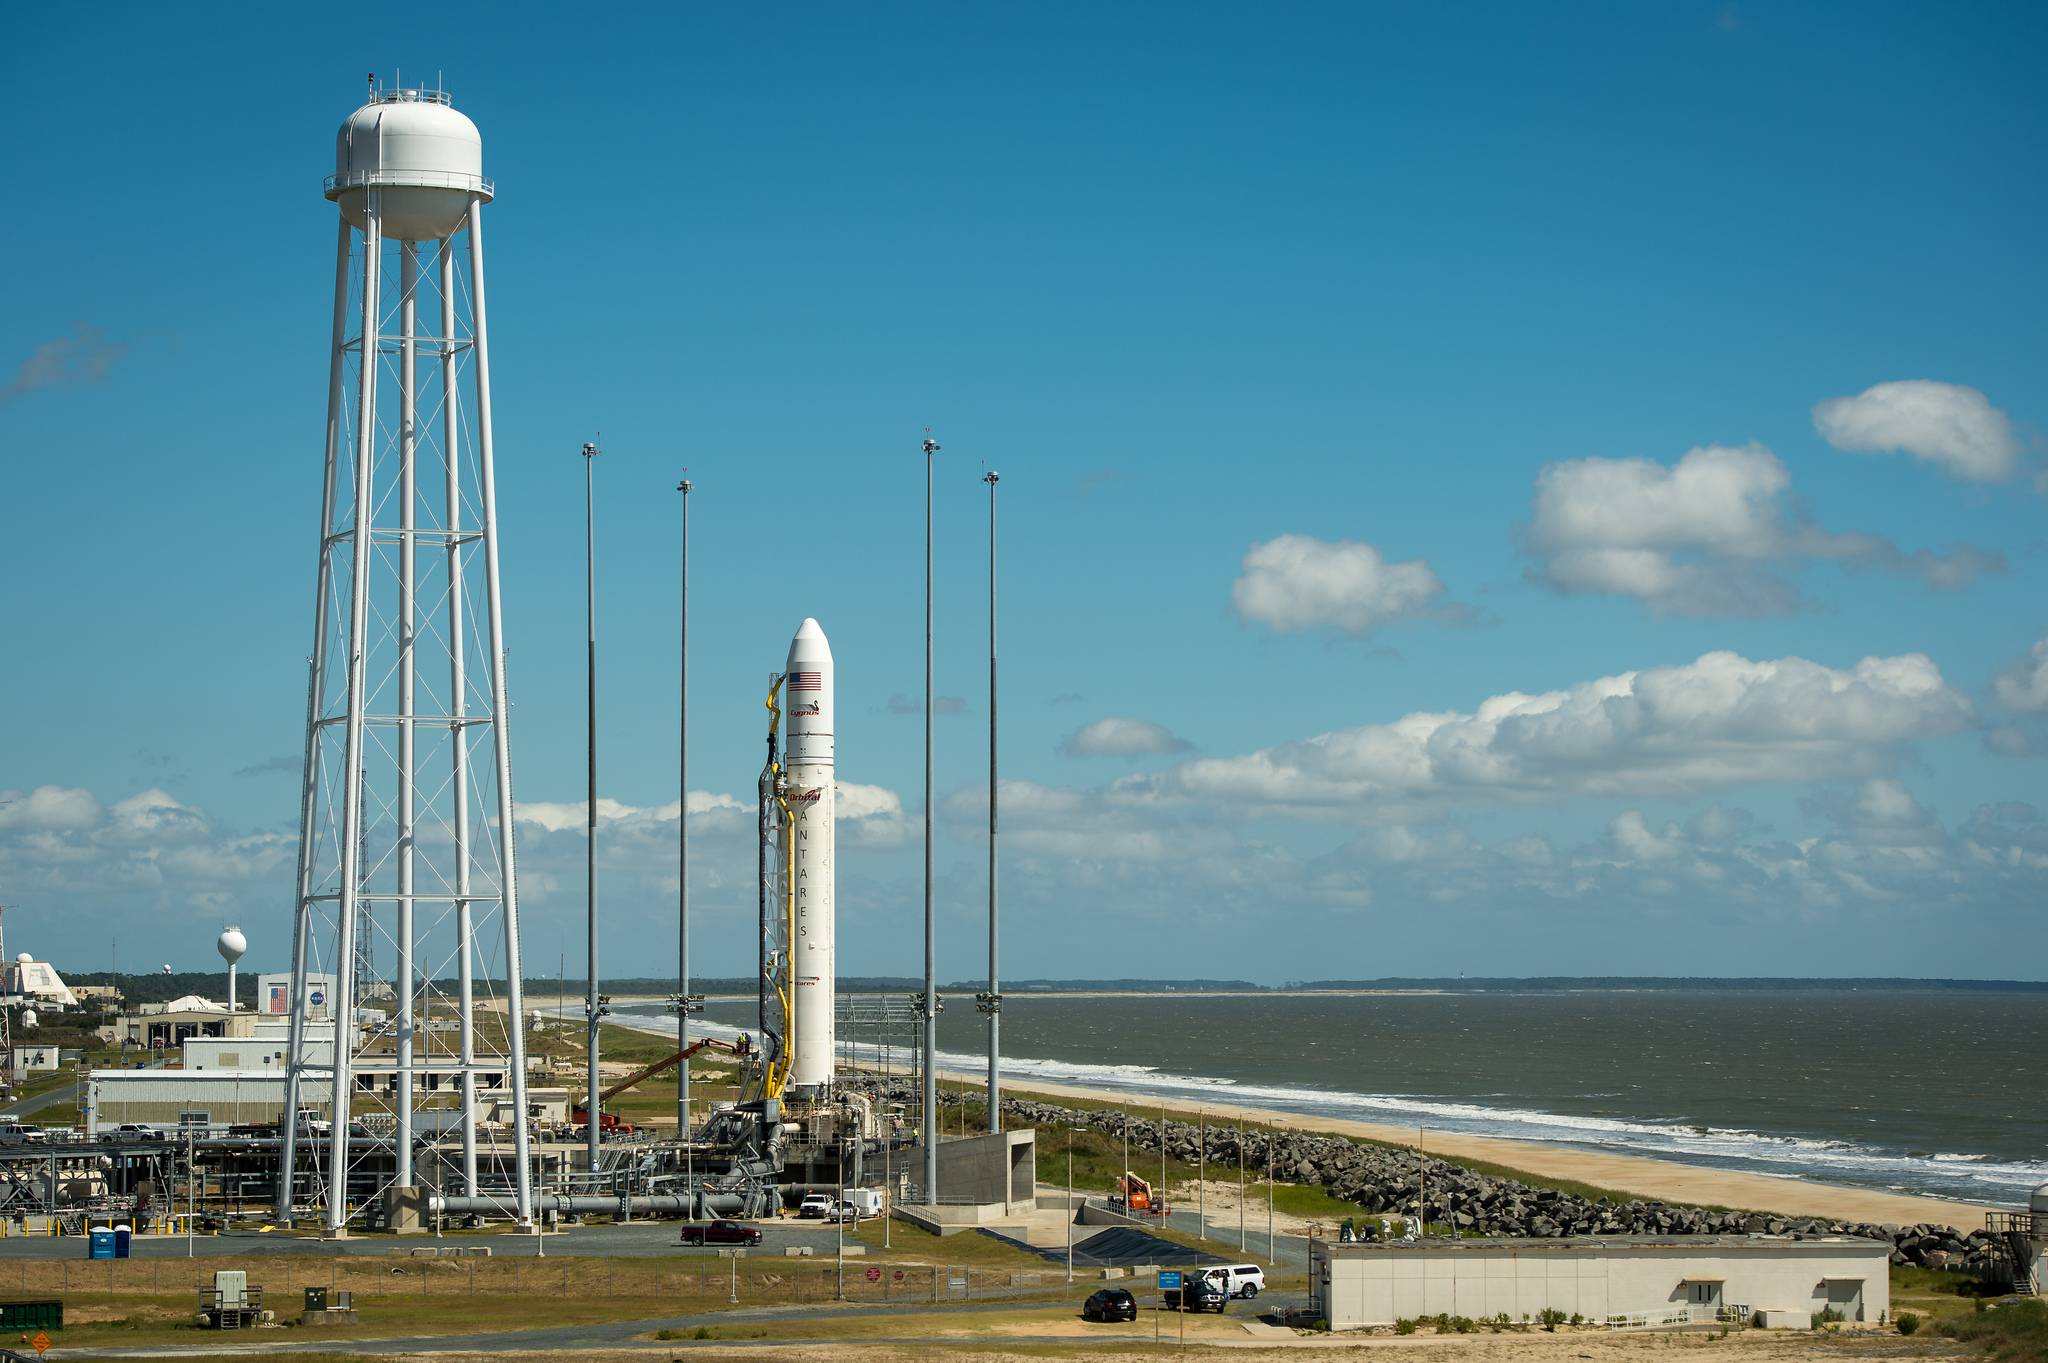 New Private Cygnus Spacecraft Launches to Space Station Today: Watch Live